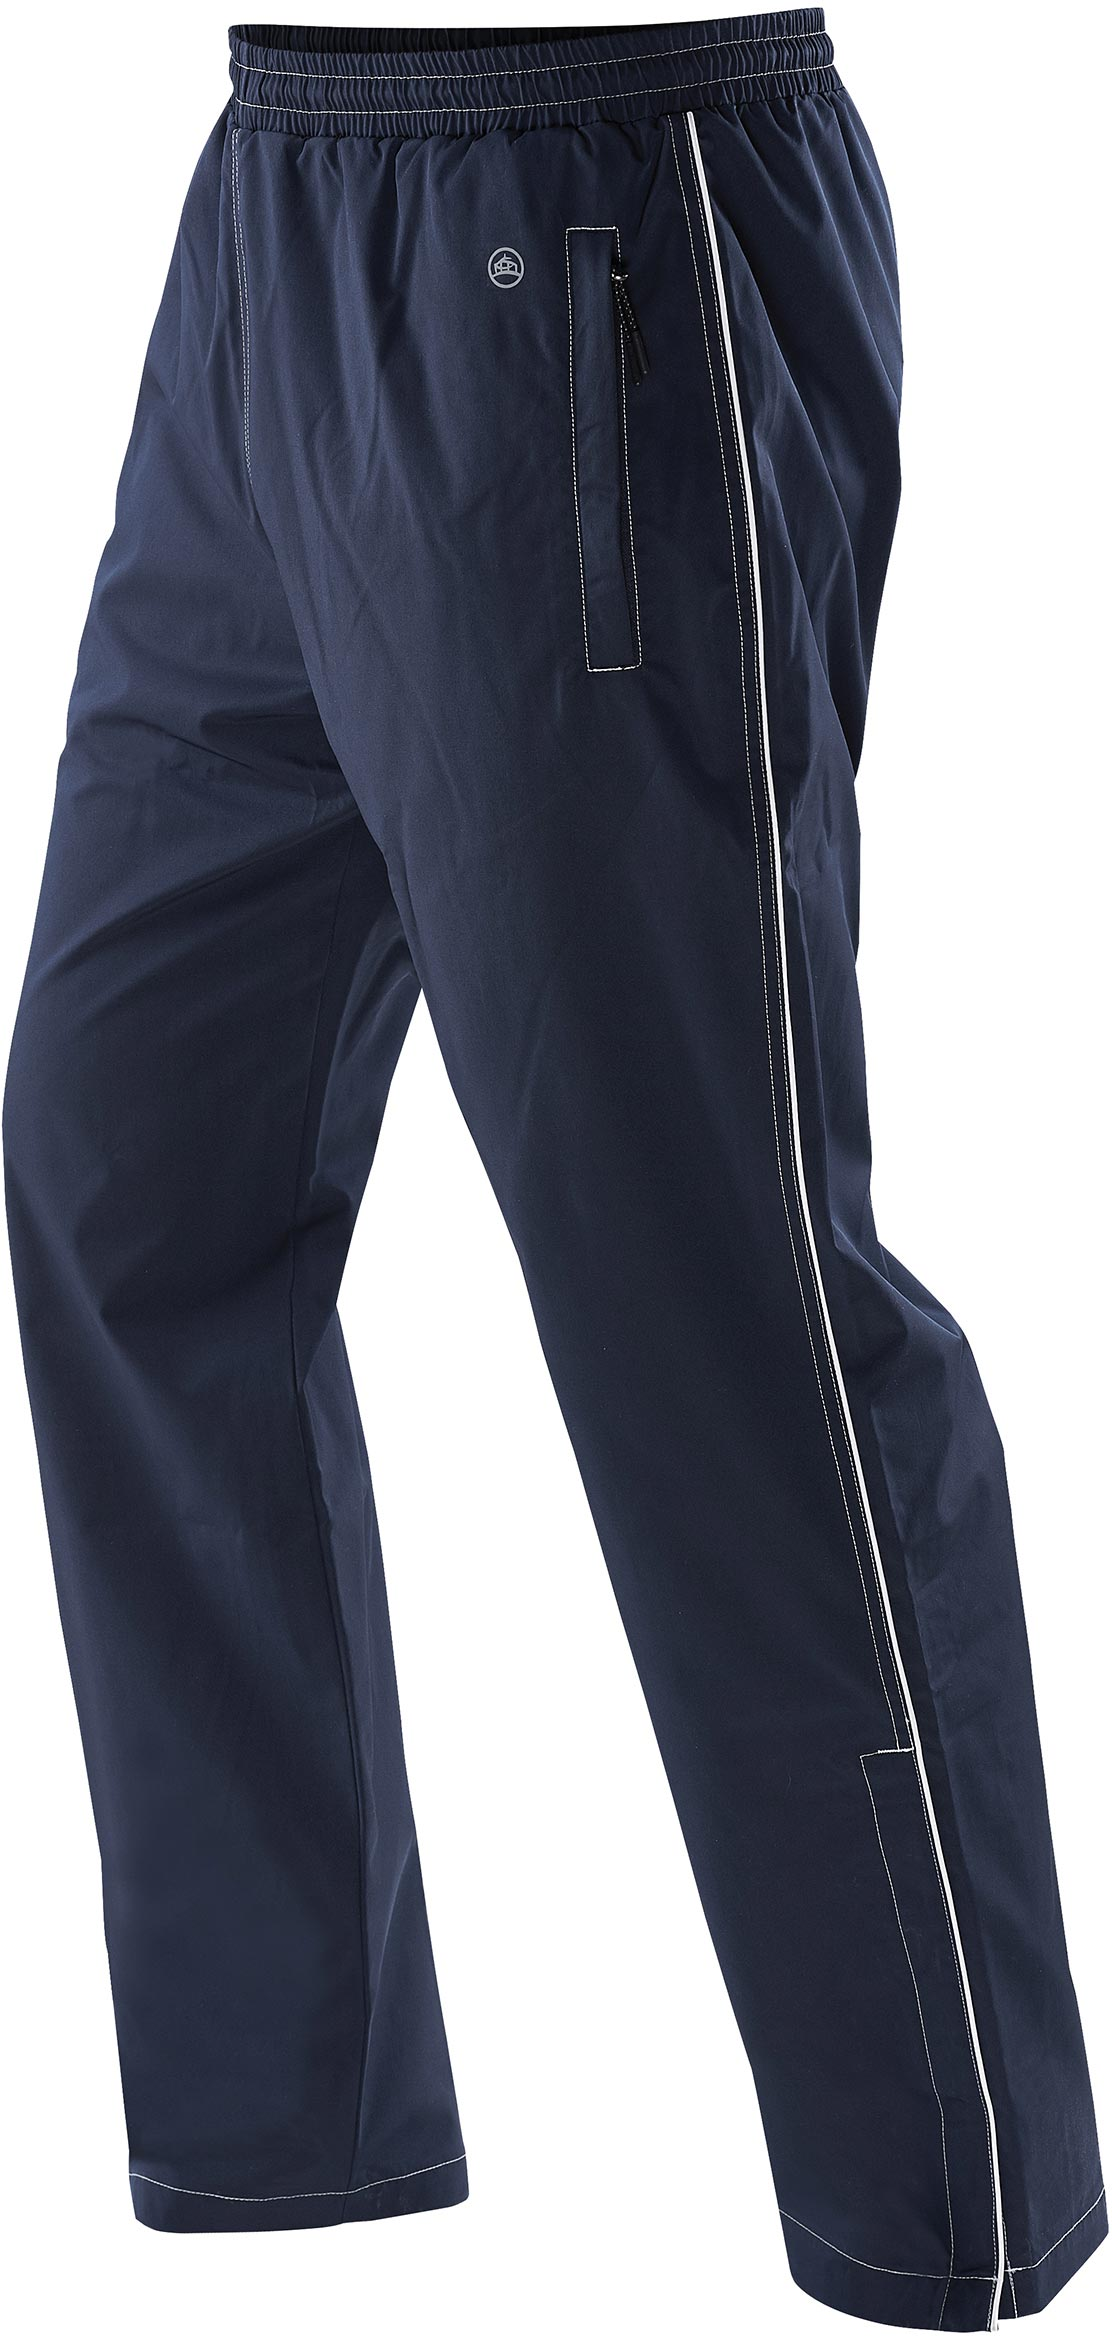 Stormtech STXP-2W - Women's Warrior Training Pant